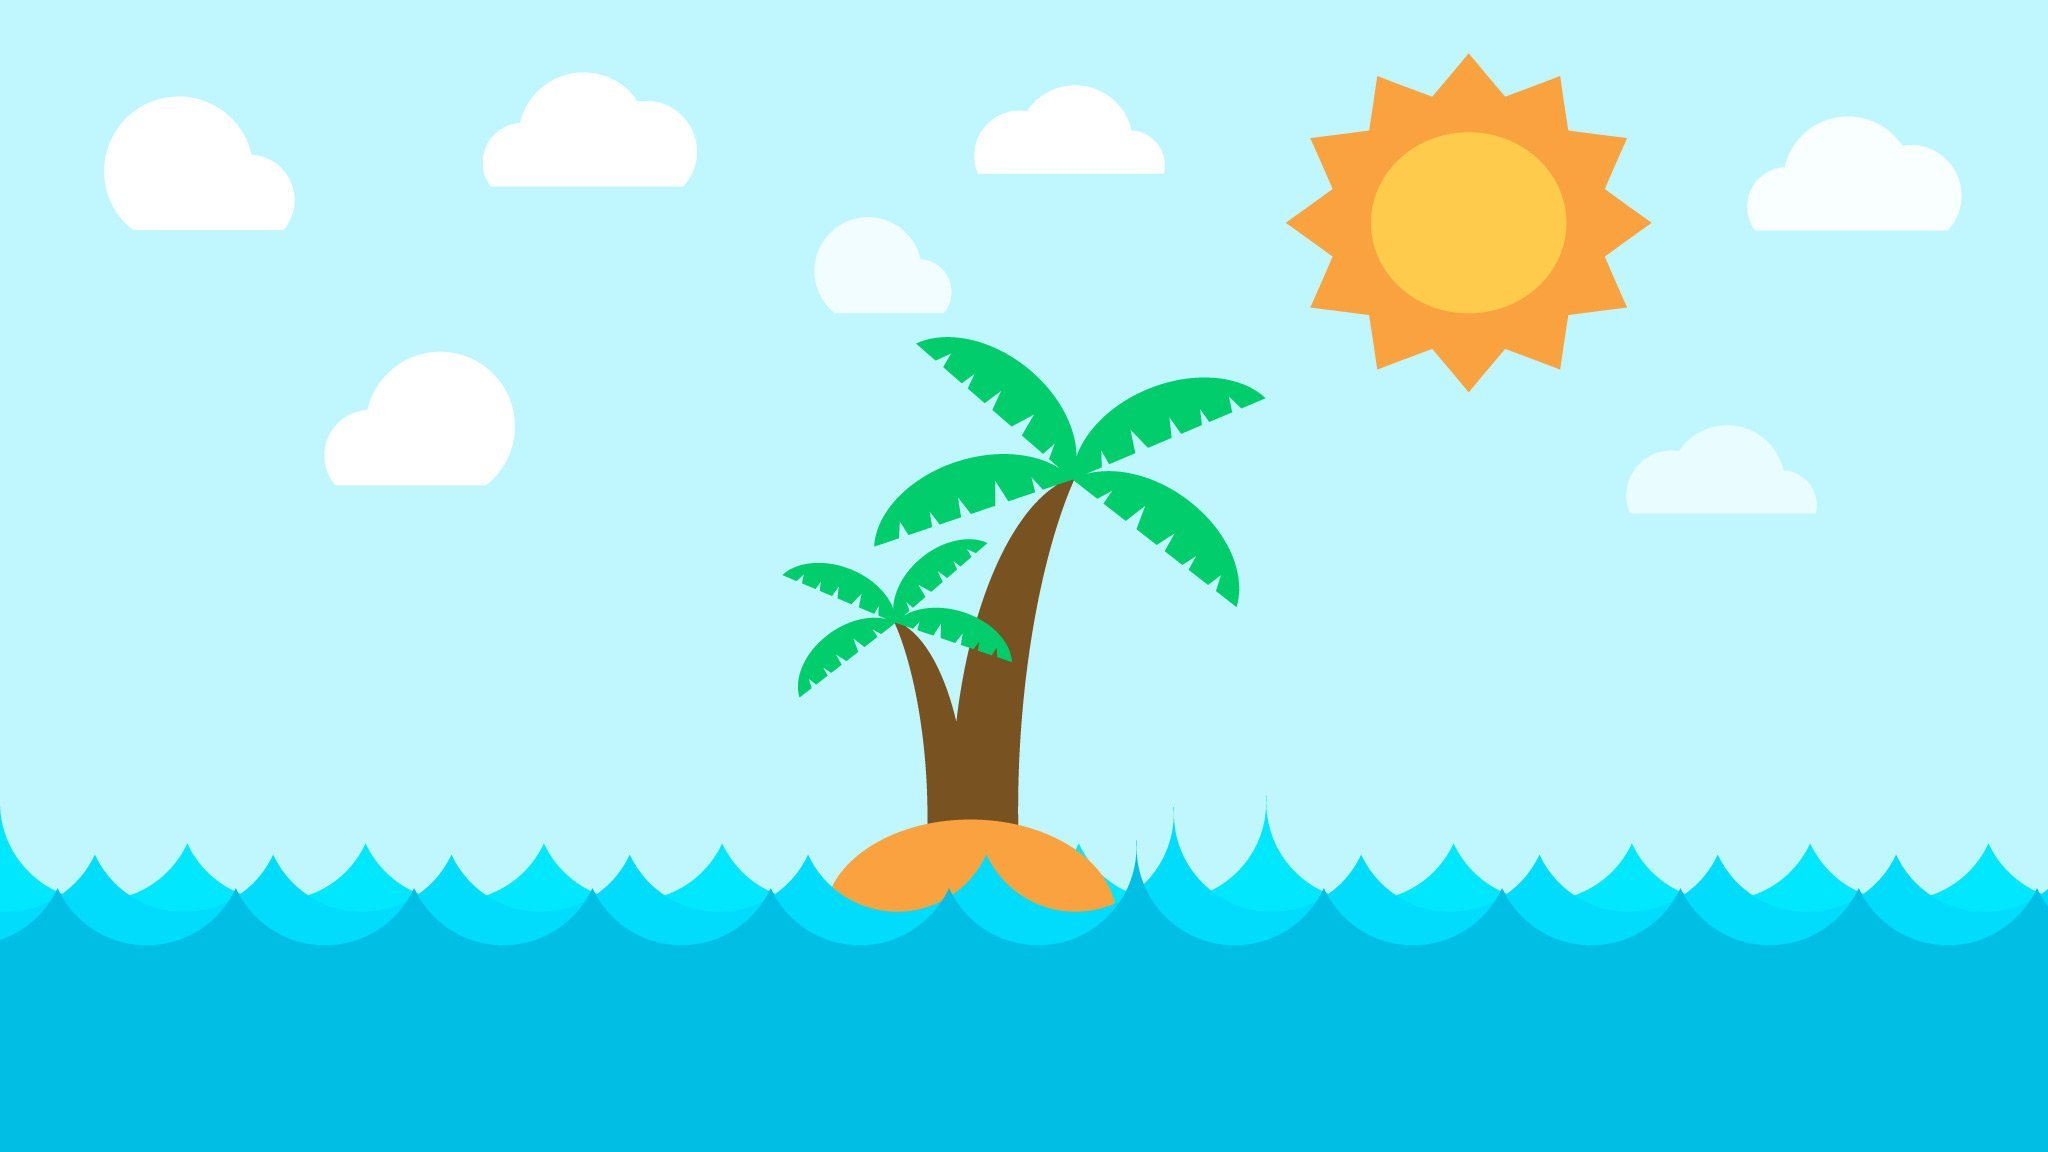 How To Create A Flat Design Island in Affinity Designer